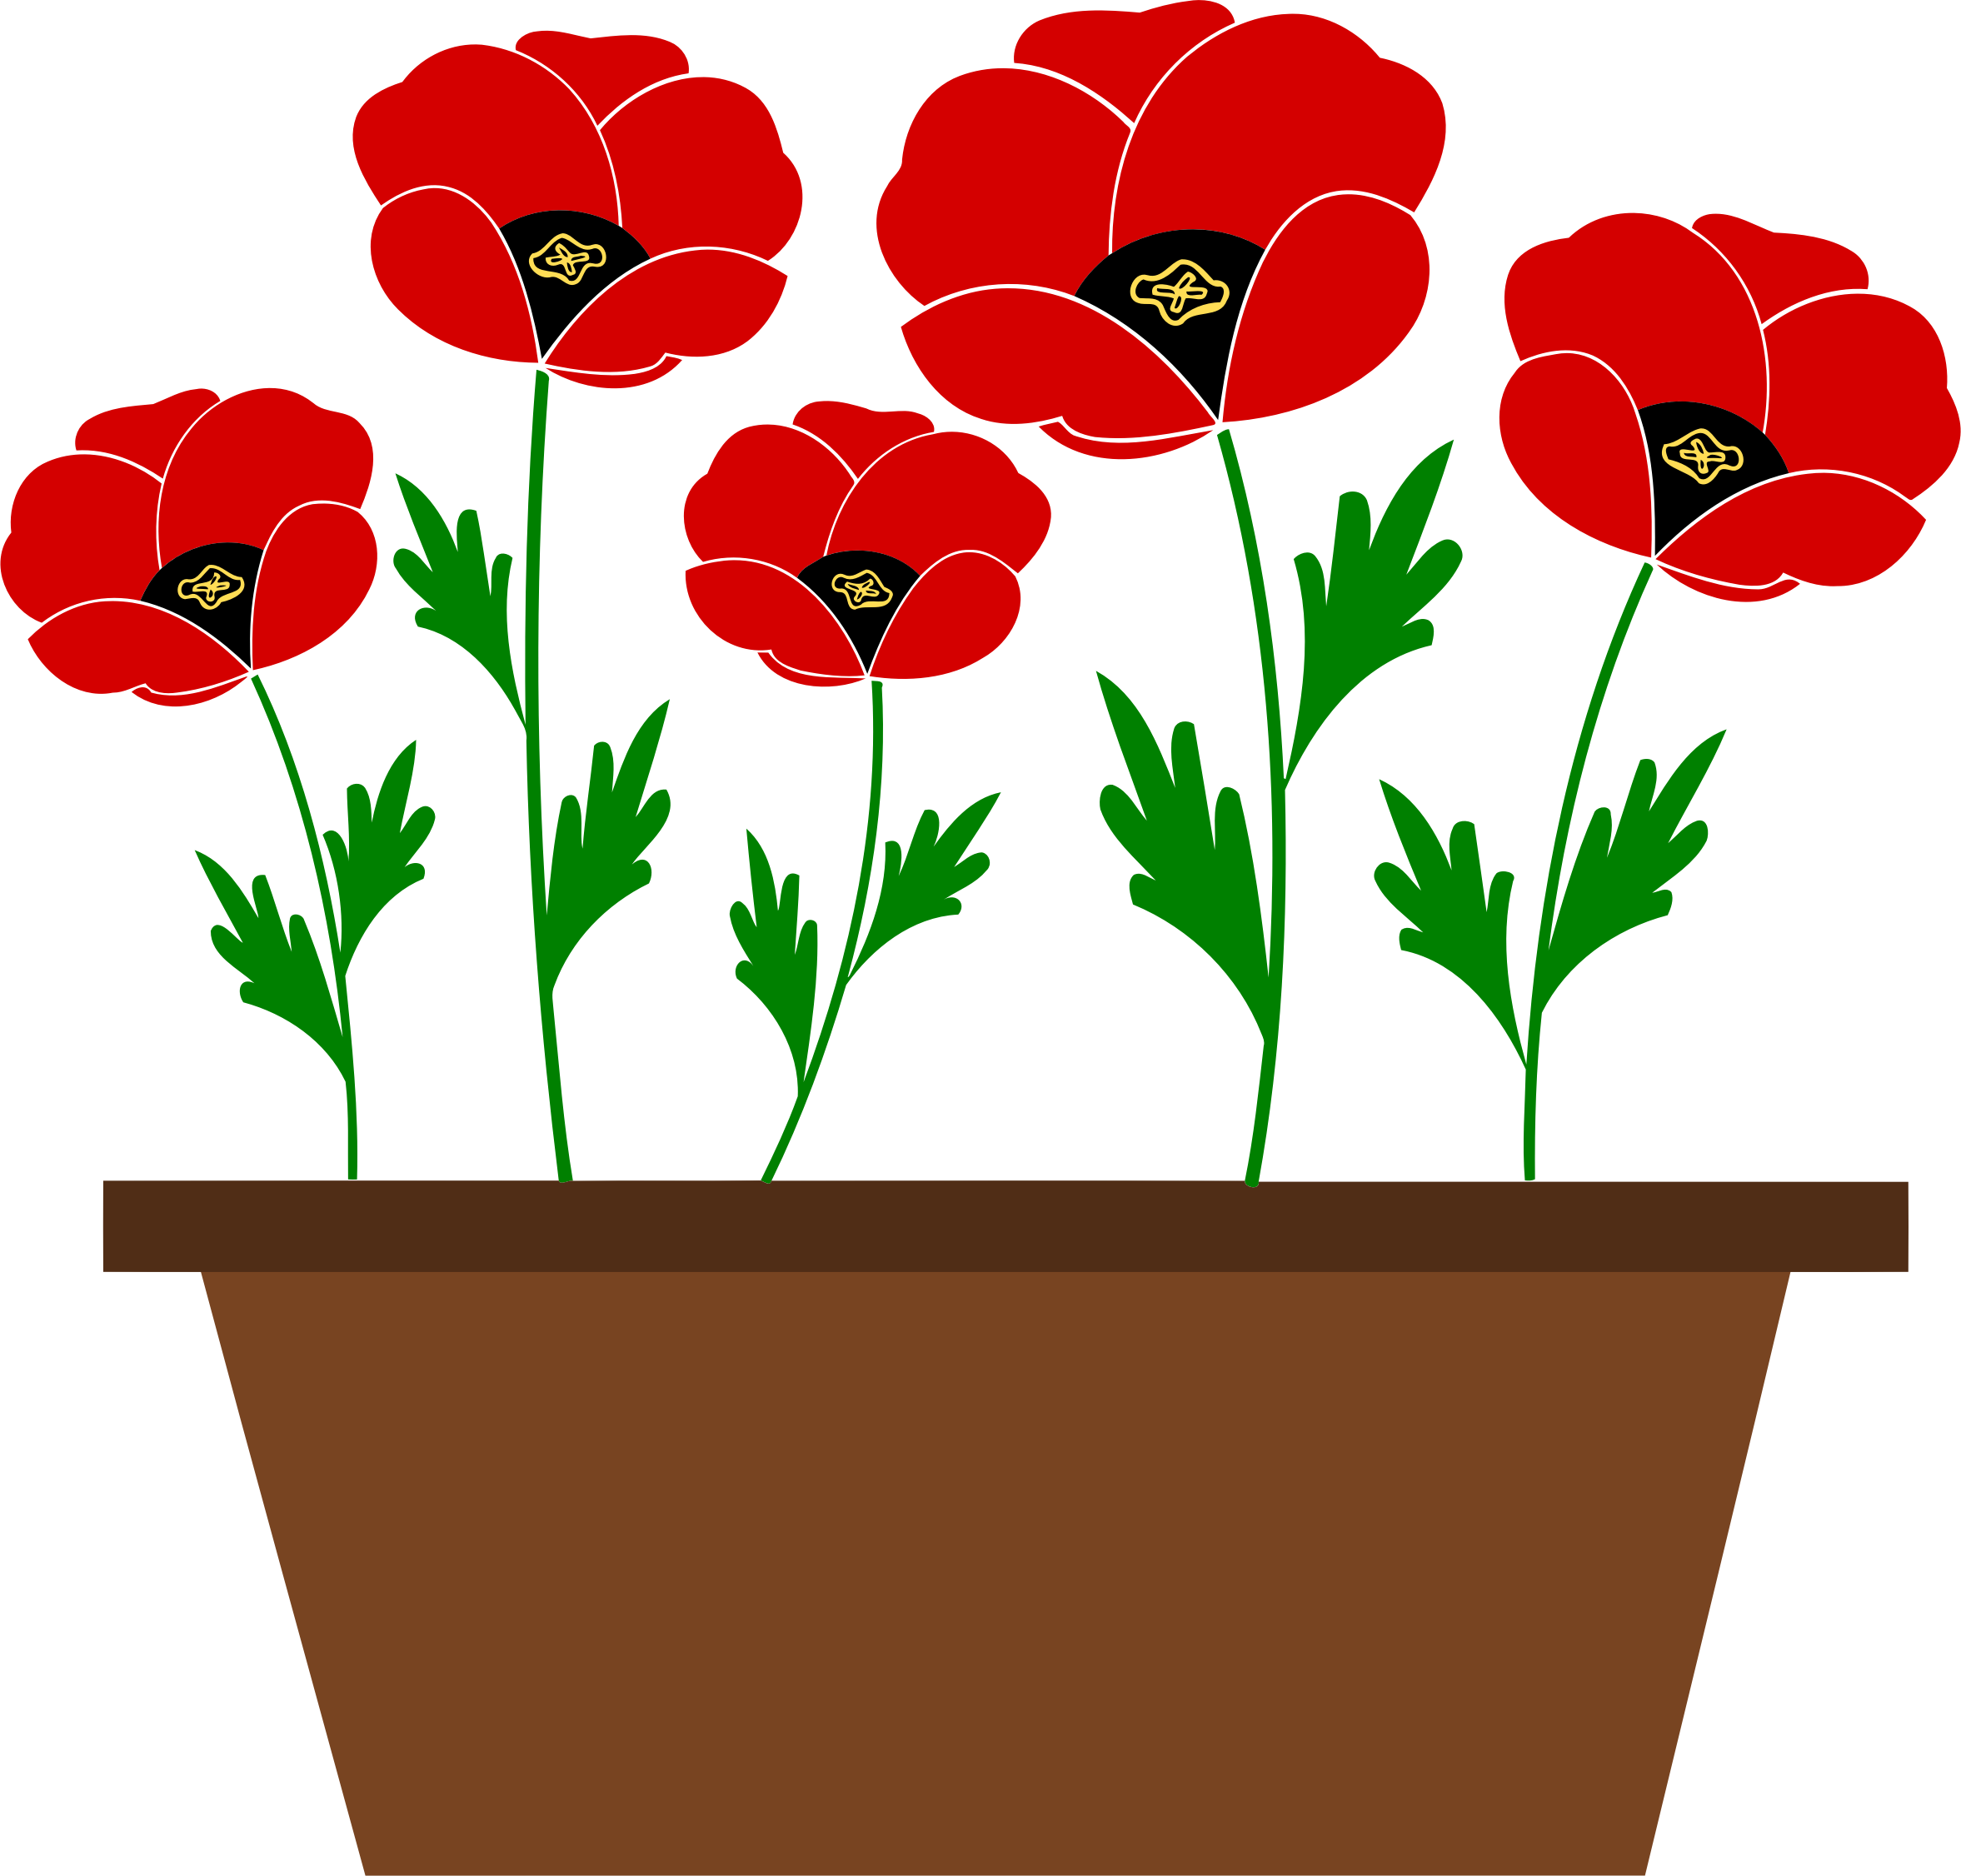 Potted poppies vectorized by Firkin